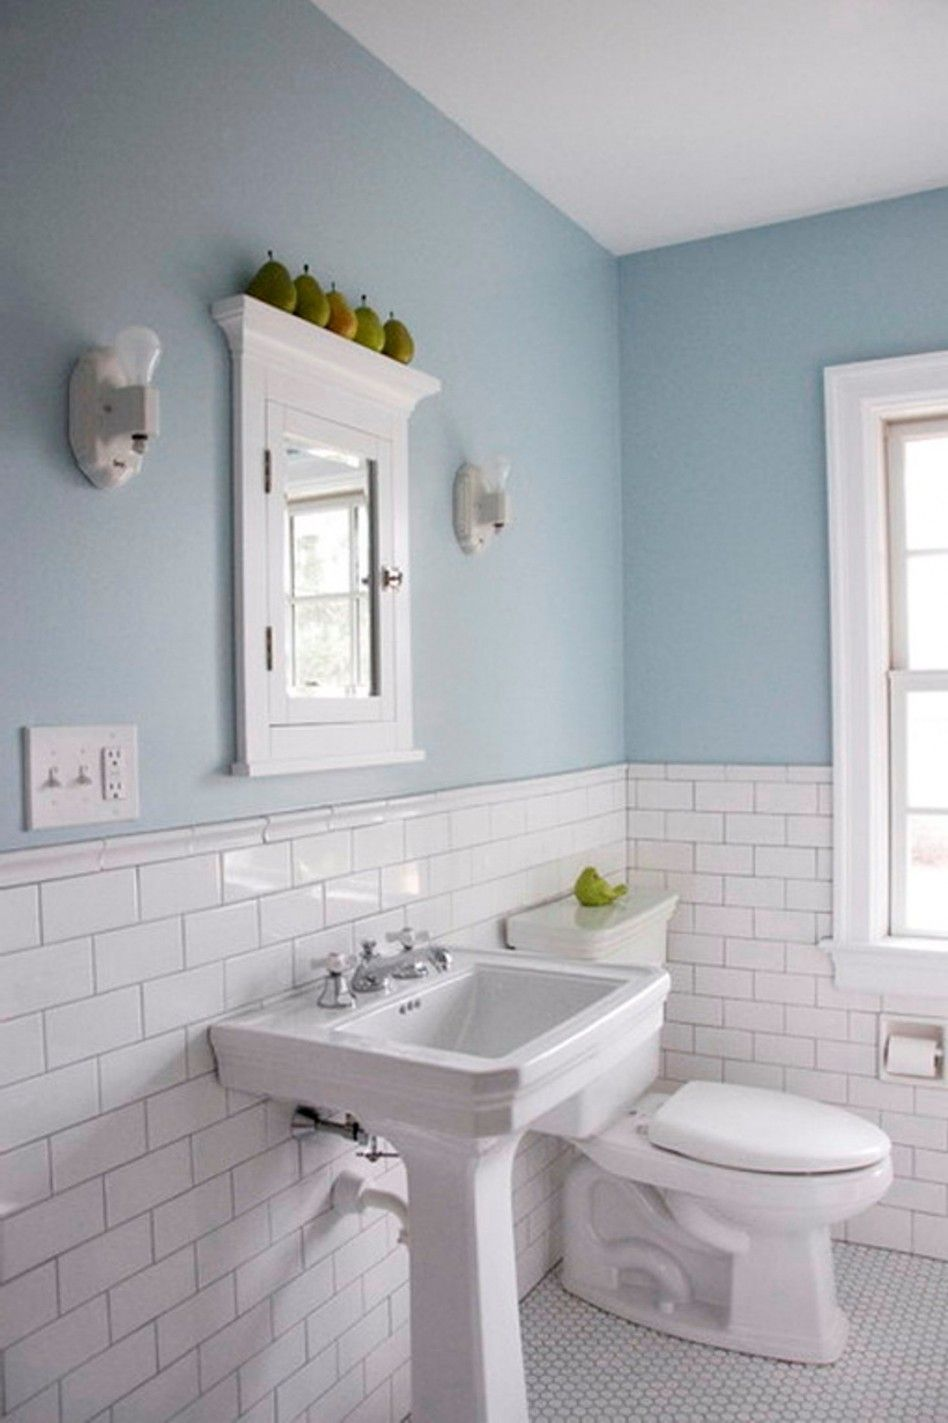 Bathroom , Subway Tile Bathroom Walls : Pale Blue Color Walls And Silver  Grout Arctic White Subway Tile Bathroom With White Pedestal Sink And  Bathroom ... Part 73